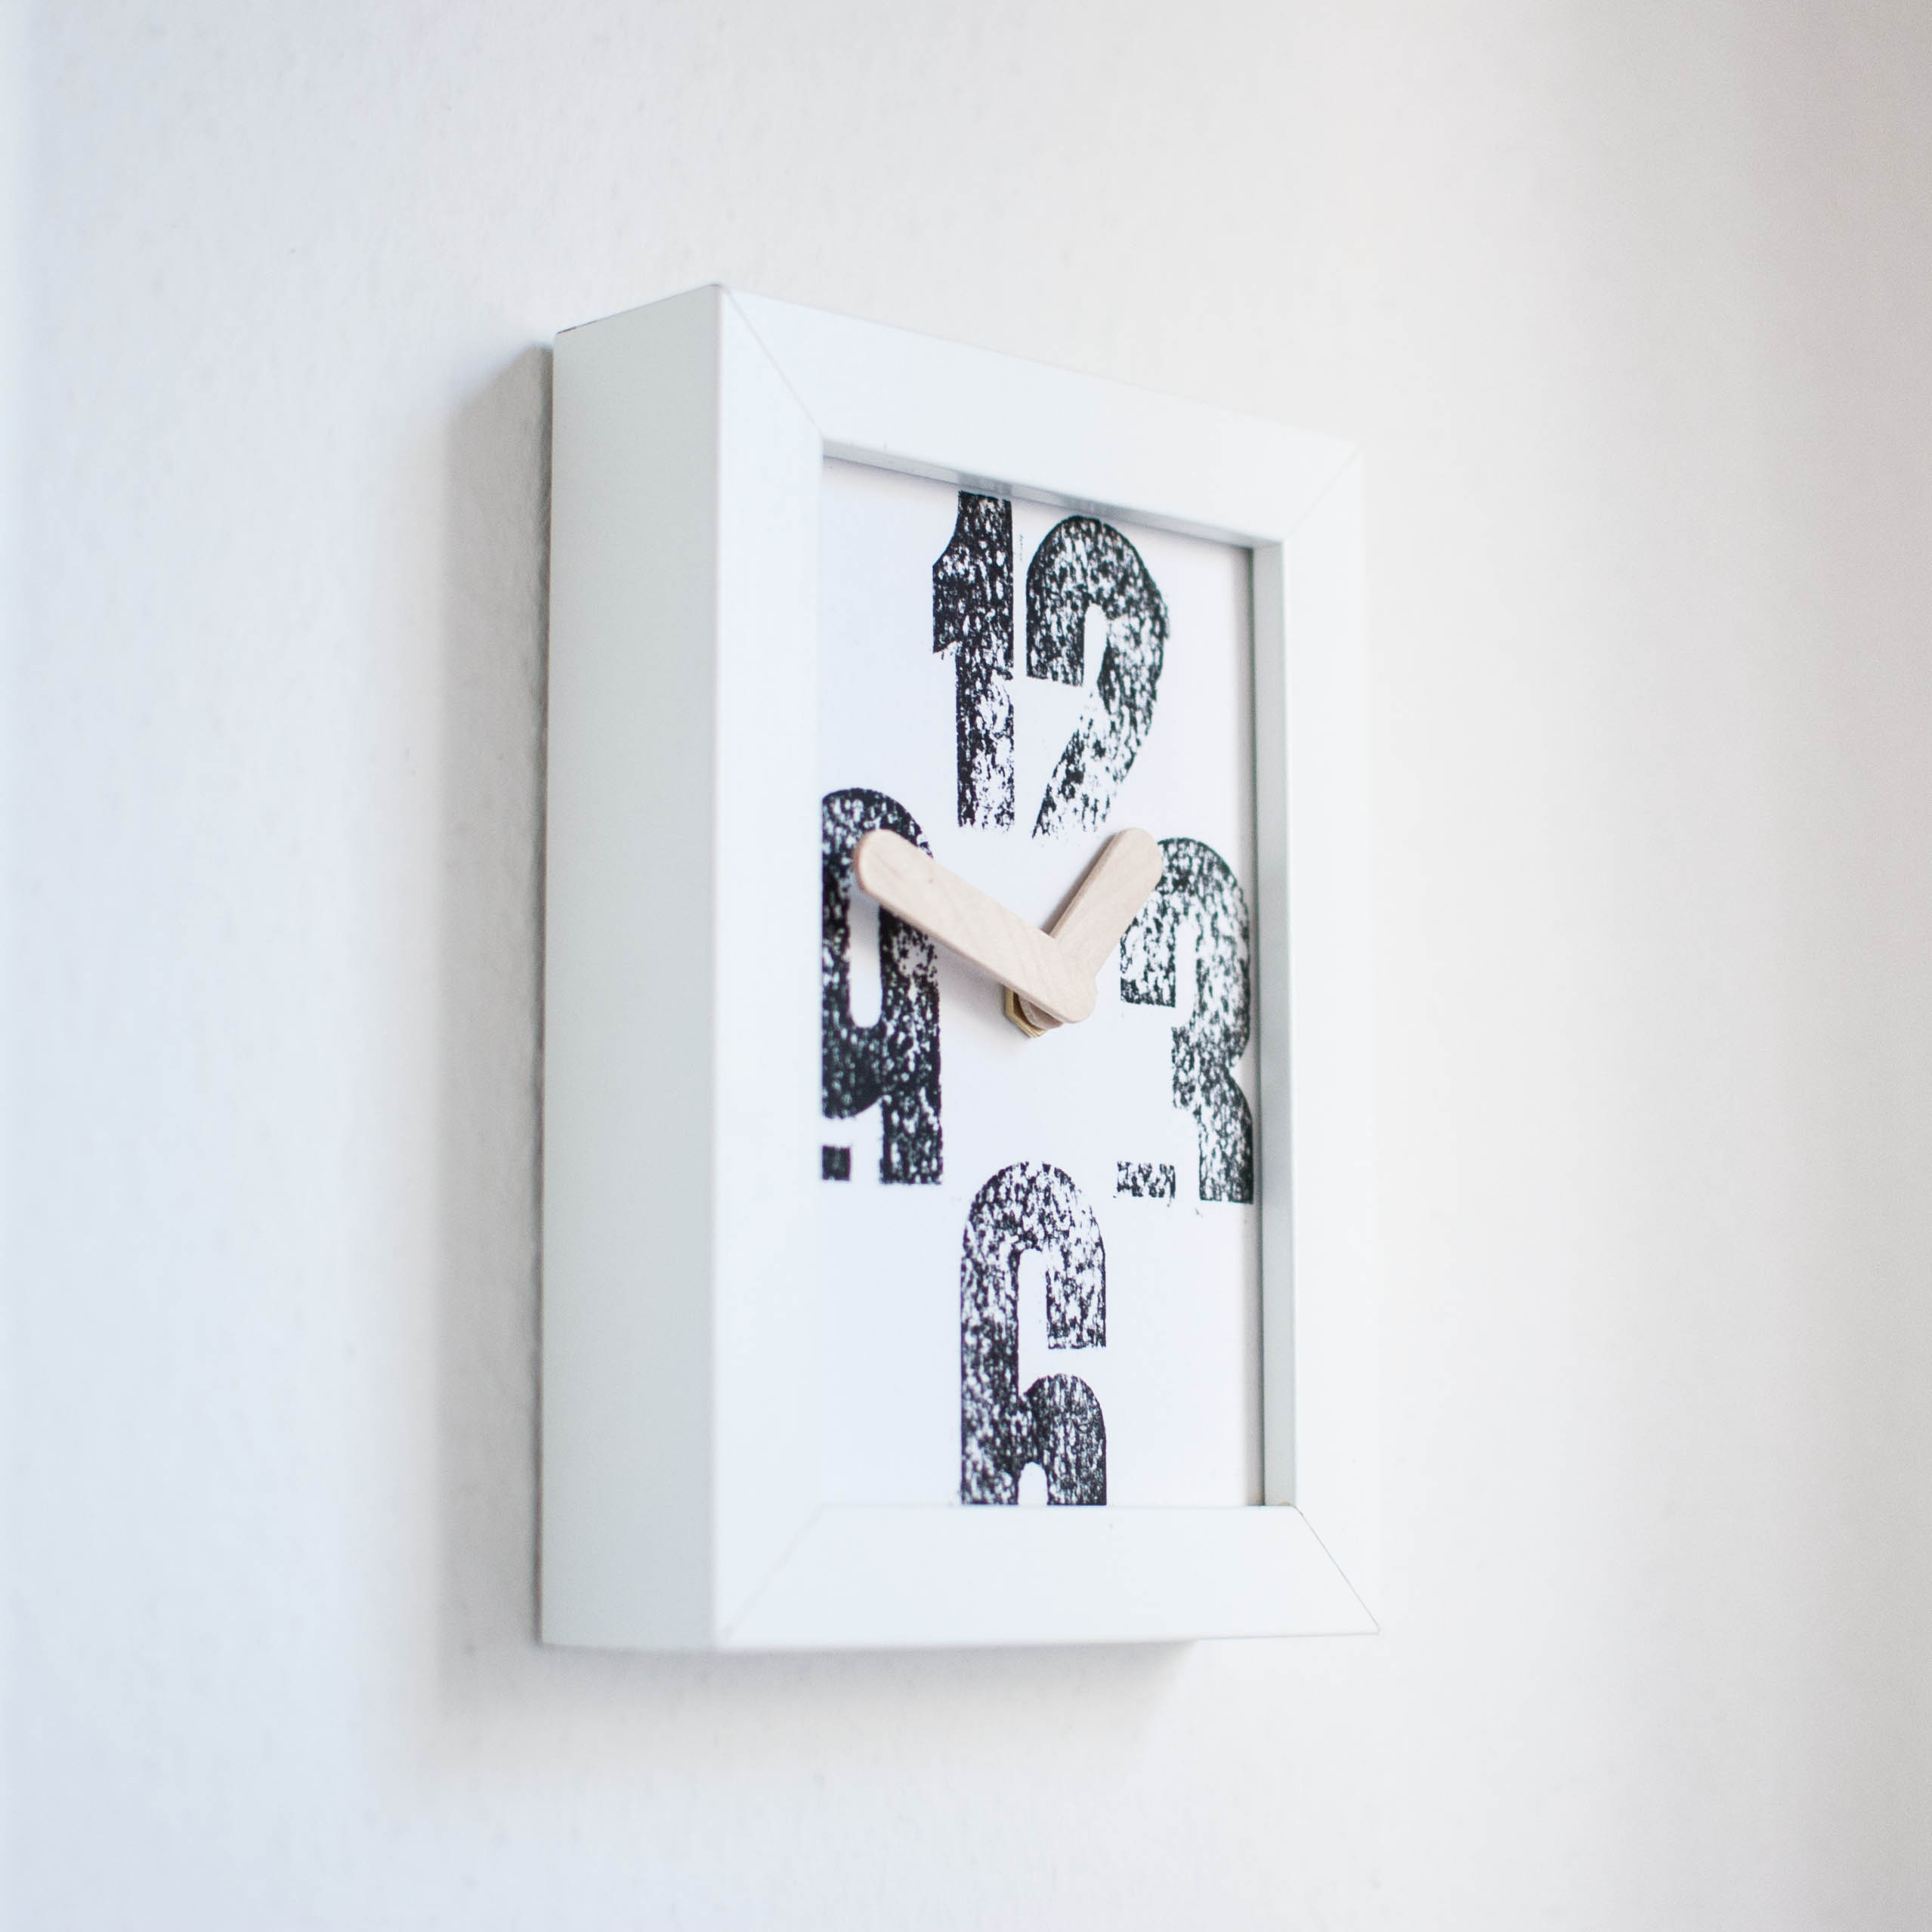 Rustic letterpress design clock handmade for Home decor furniture